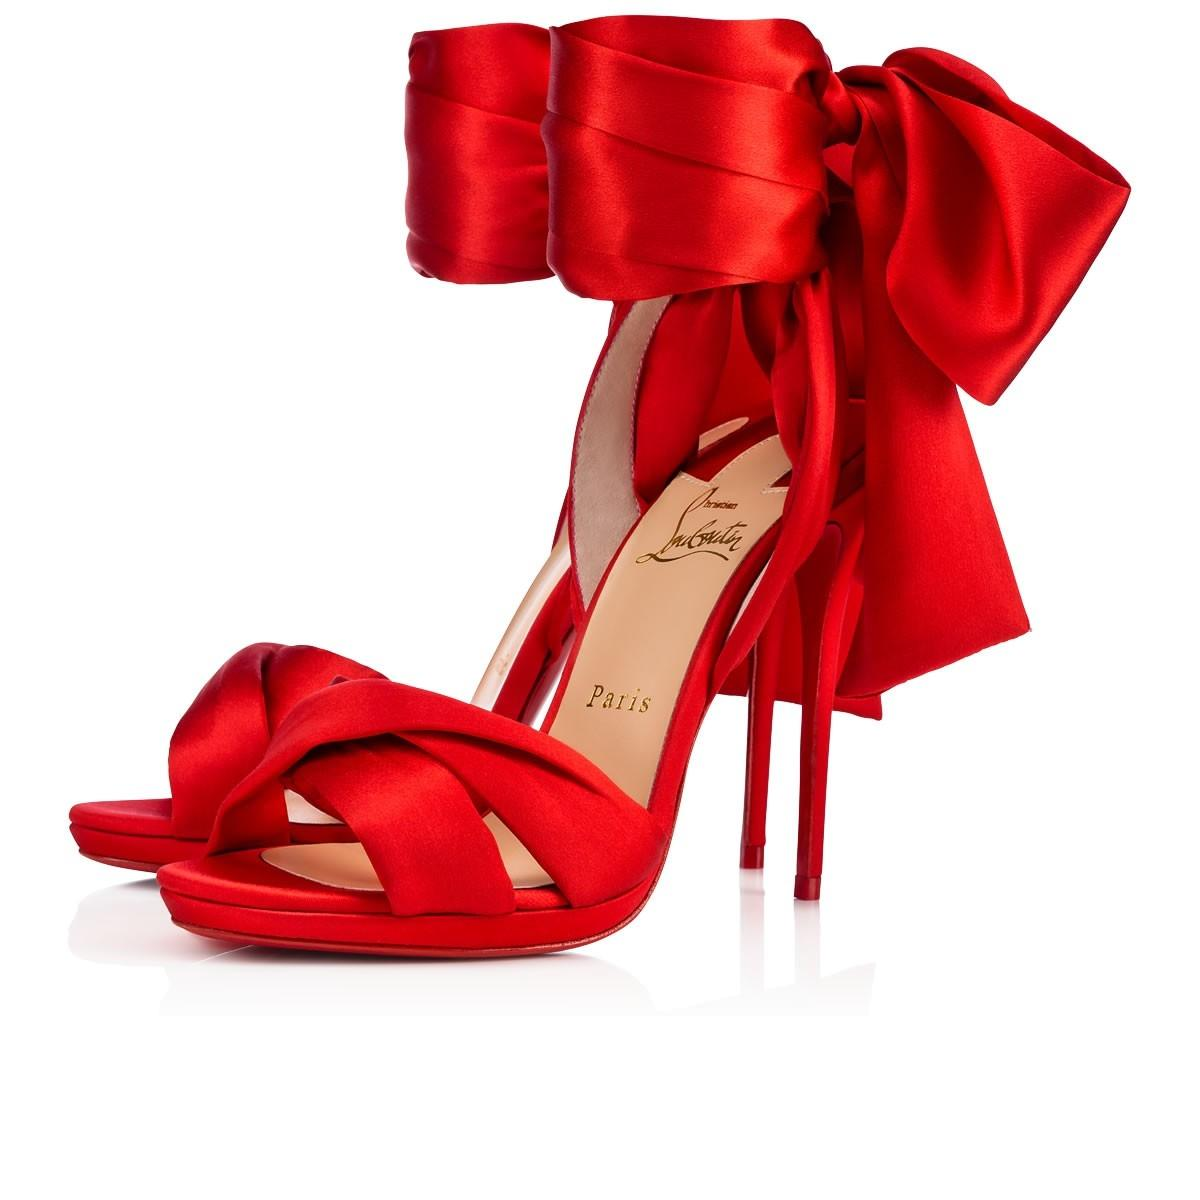 Tres Frais 120 Satin Sandals - Red Christian Louboutin epBkOm